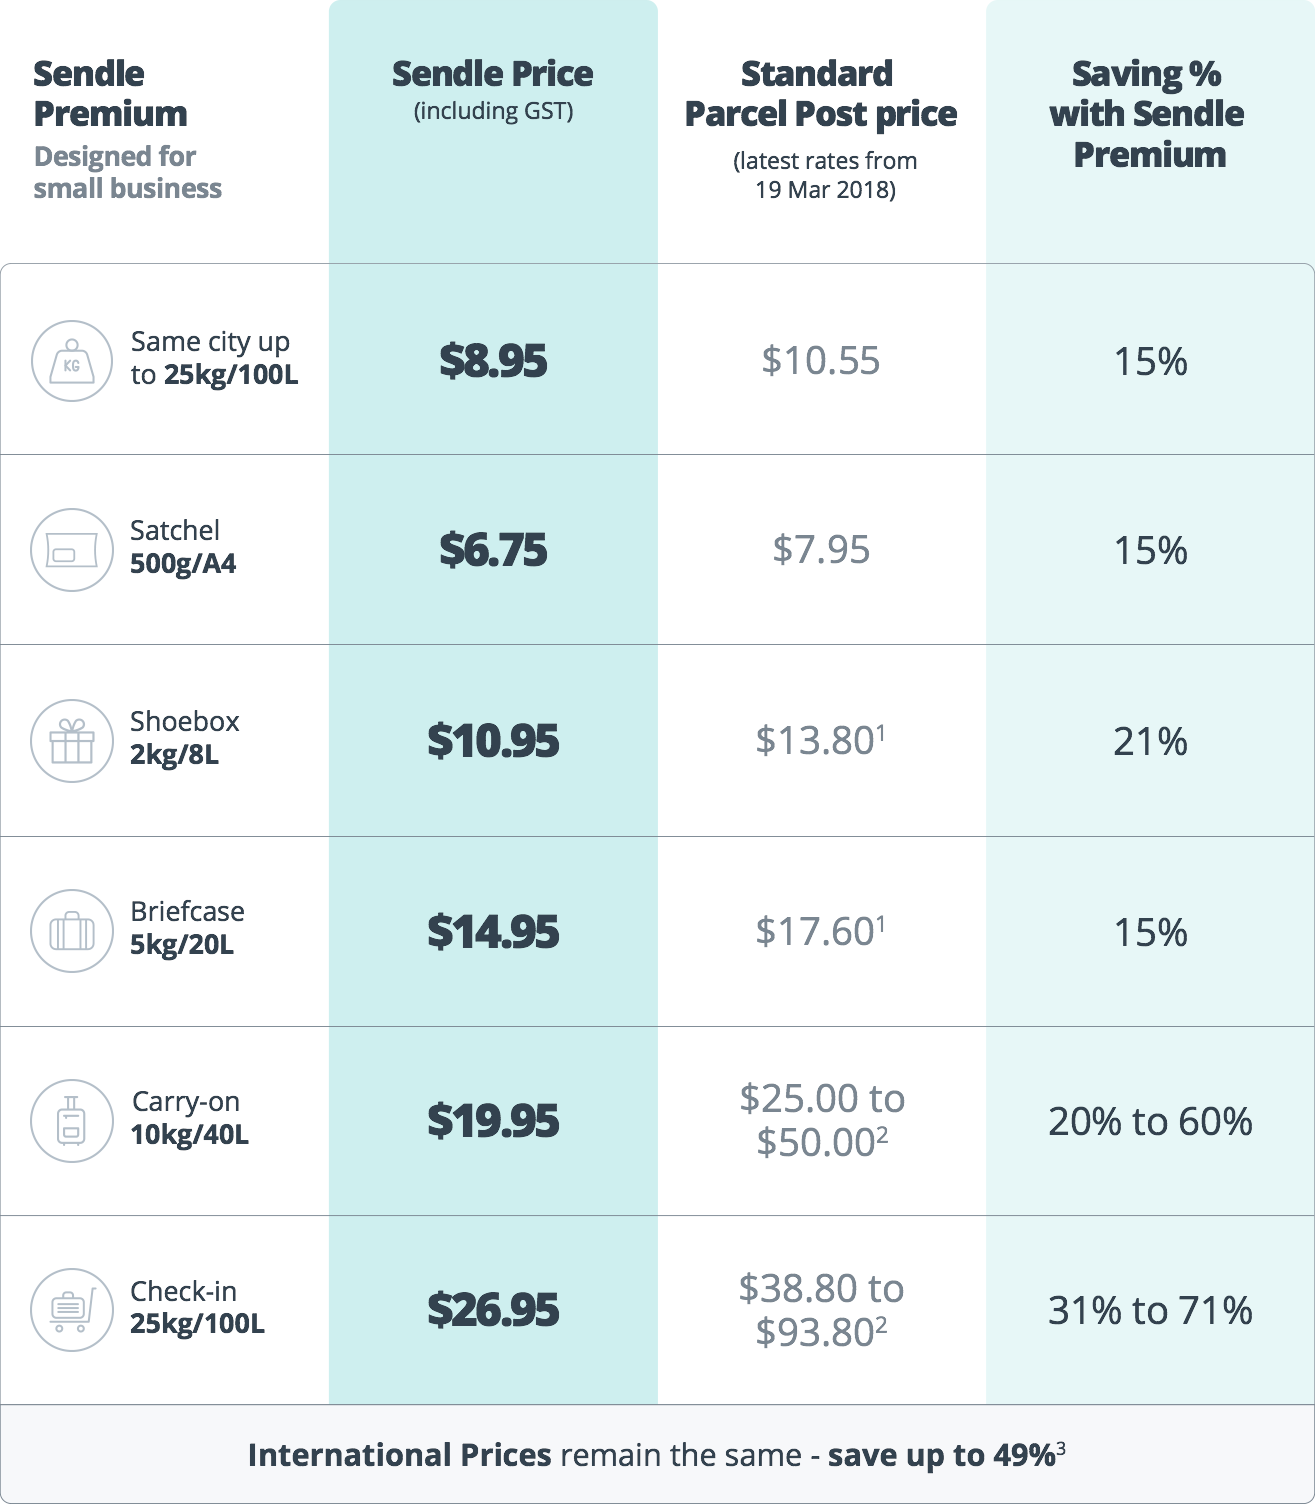 Sendle Premium Pricing